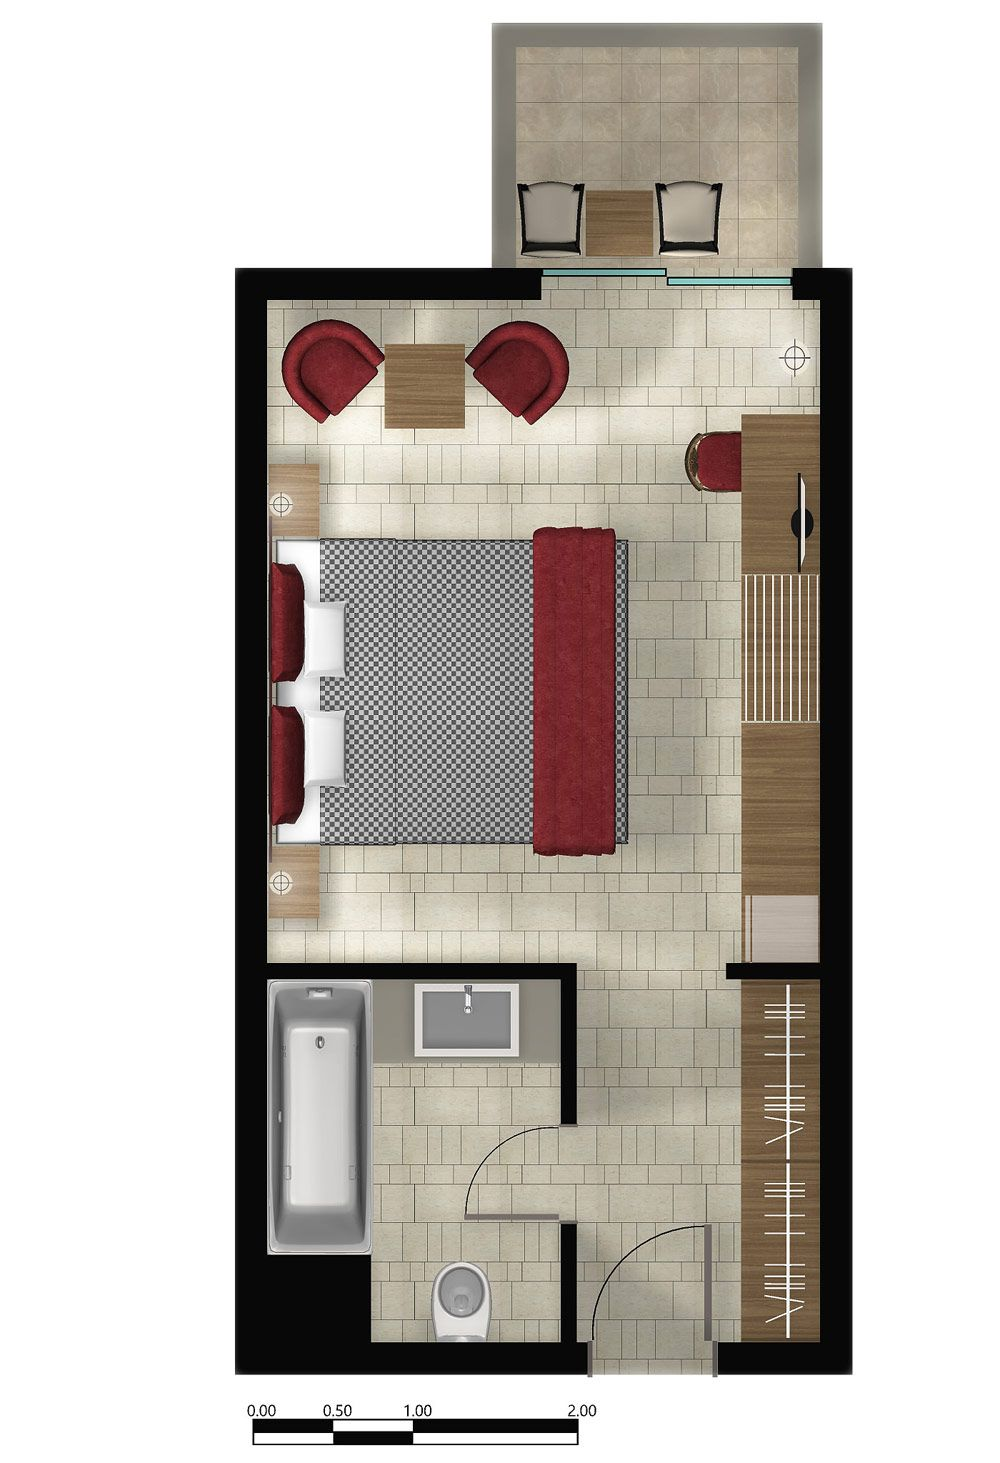 Typical w hotel guestroom plans google search for Apartment design guide sepp 65